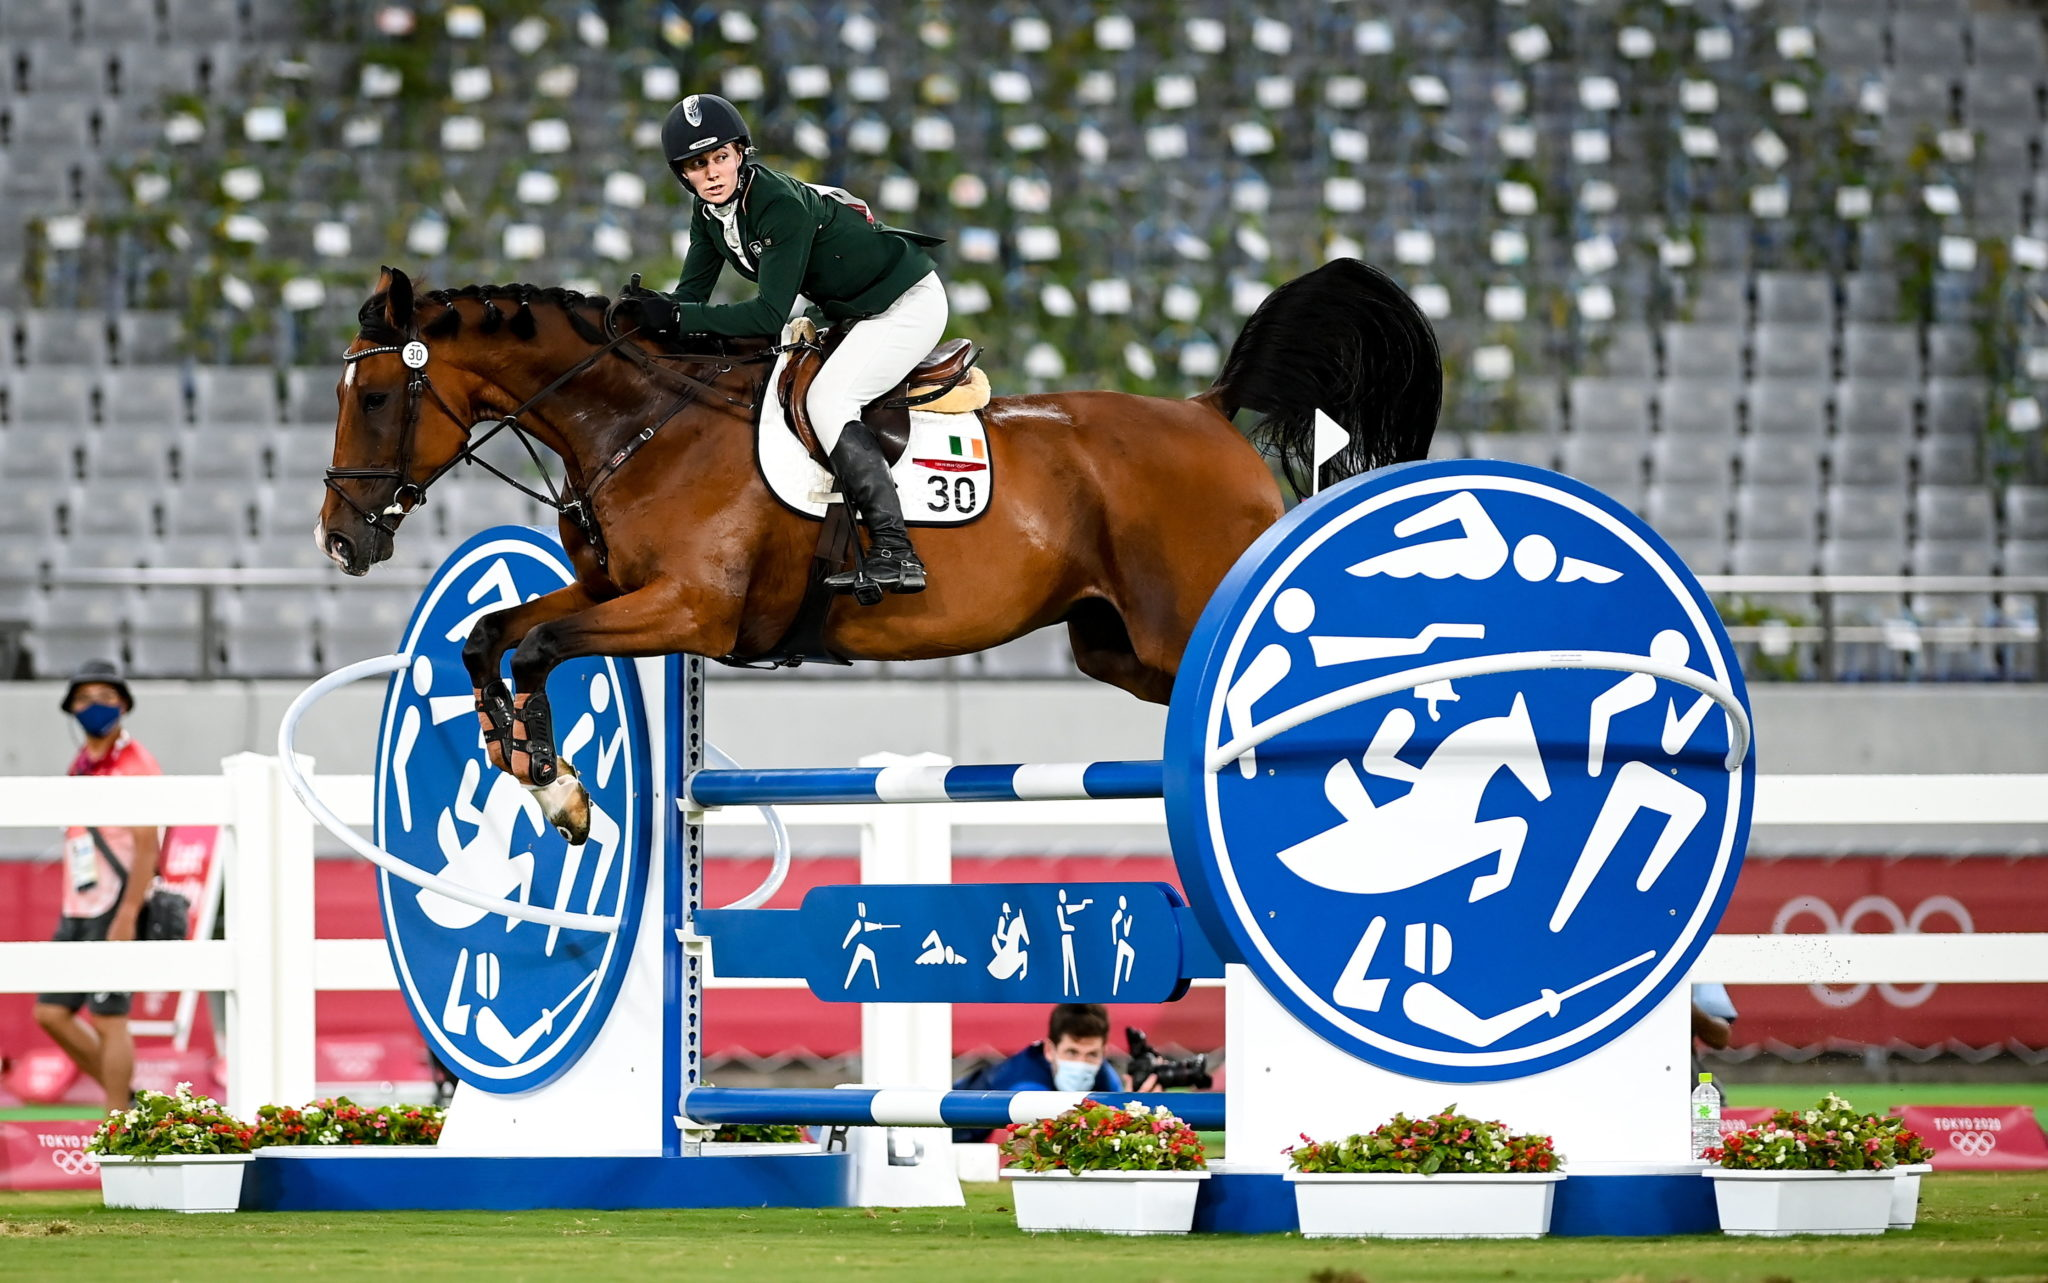 Coyle Horse Showjumping